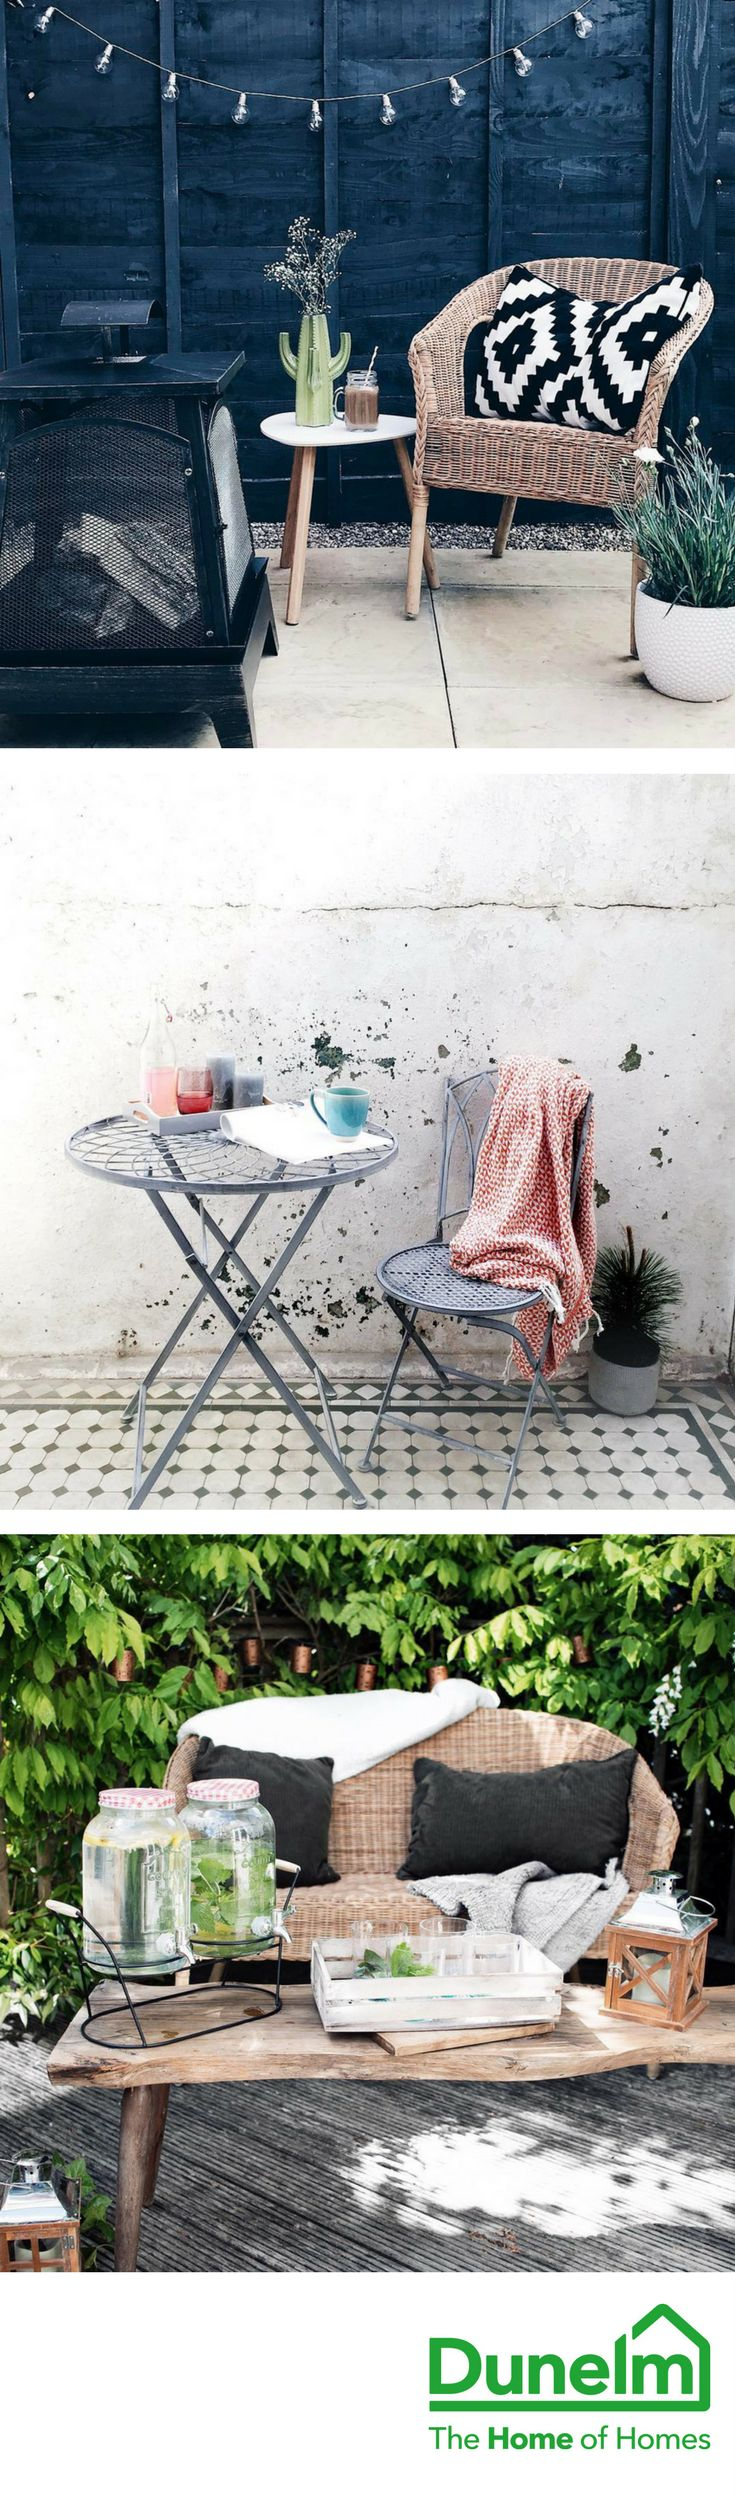 LIFE'S BETTER OUTDOORS | Maximise the fun this summer with our wide range of garden furniture and accessories. From two piece bistro sets and urban outdoor lighting, to outdoor dining sets and chimineas, you can make the most of your outdoor space, whatever its size!